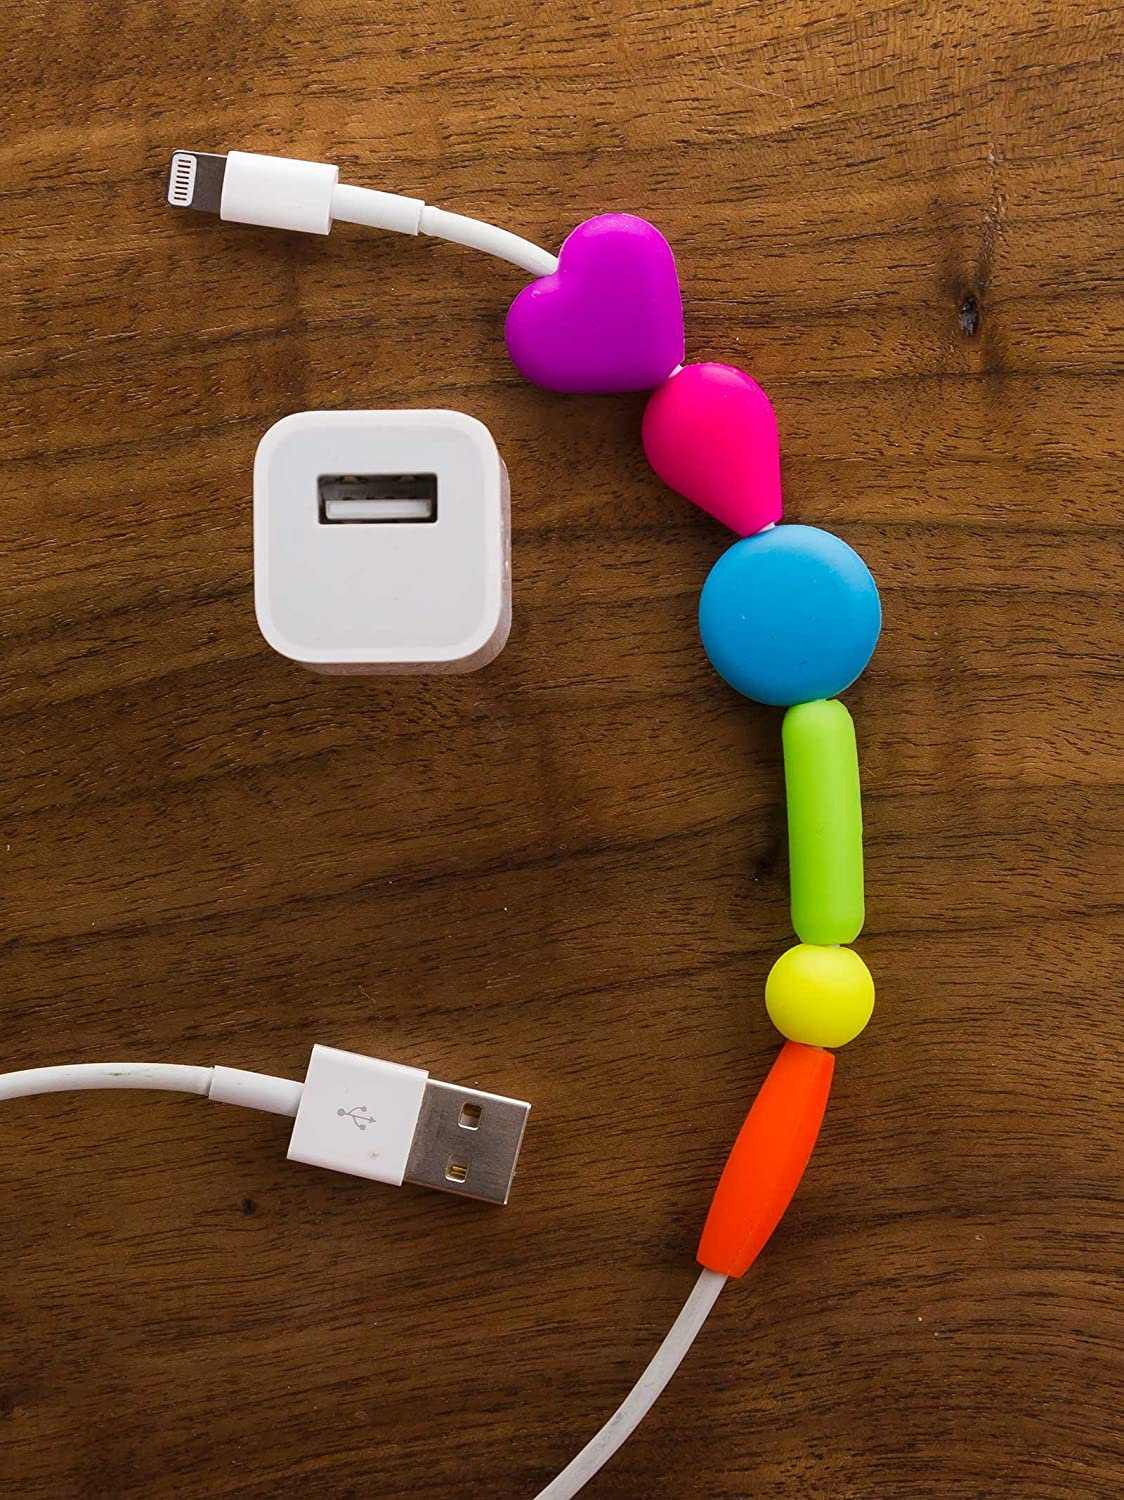 This iPhone cable is just colorful!